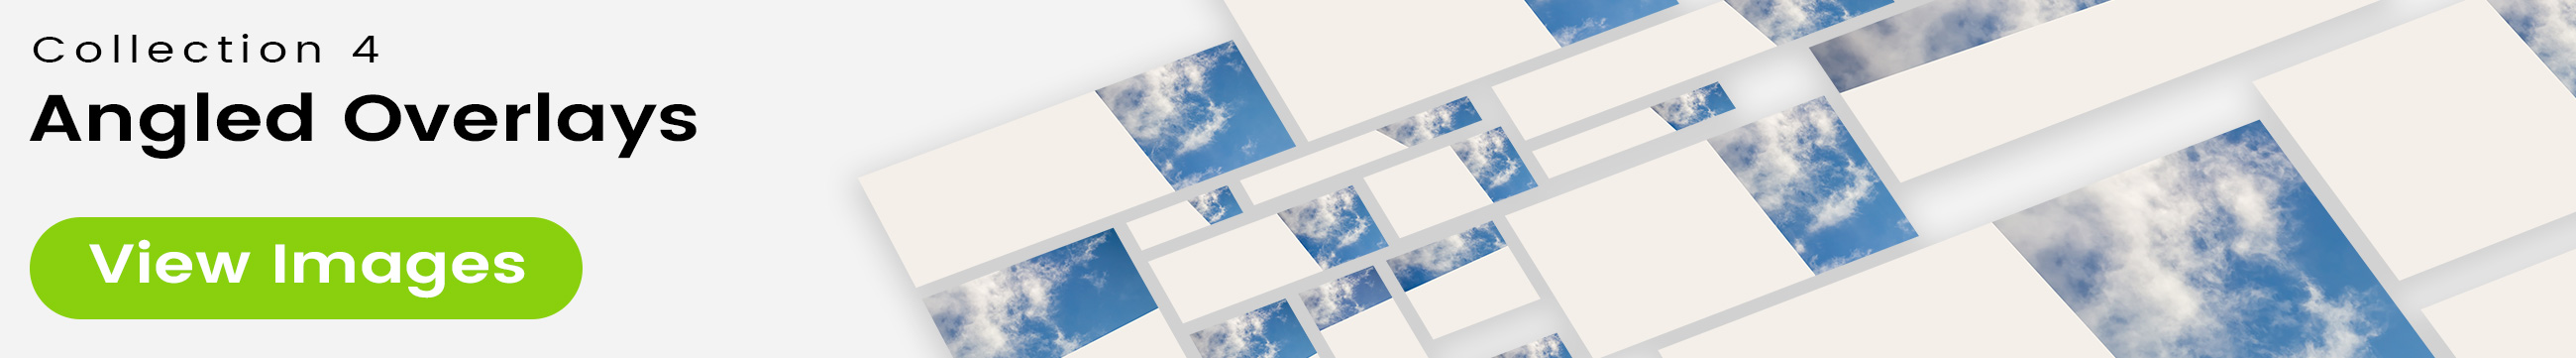 See 25 bonus images included with clouds stock image 9468. Collection 4 of 4 features an angled overlay design customized with a color that complements each photo.